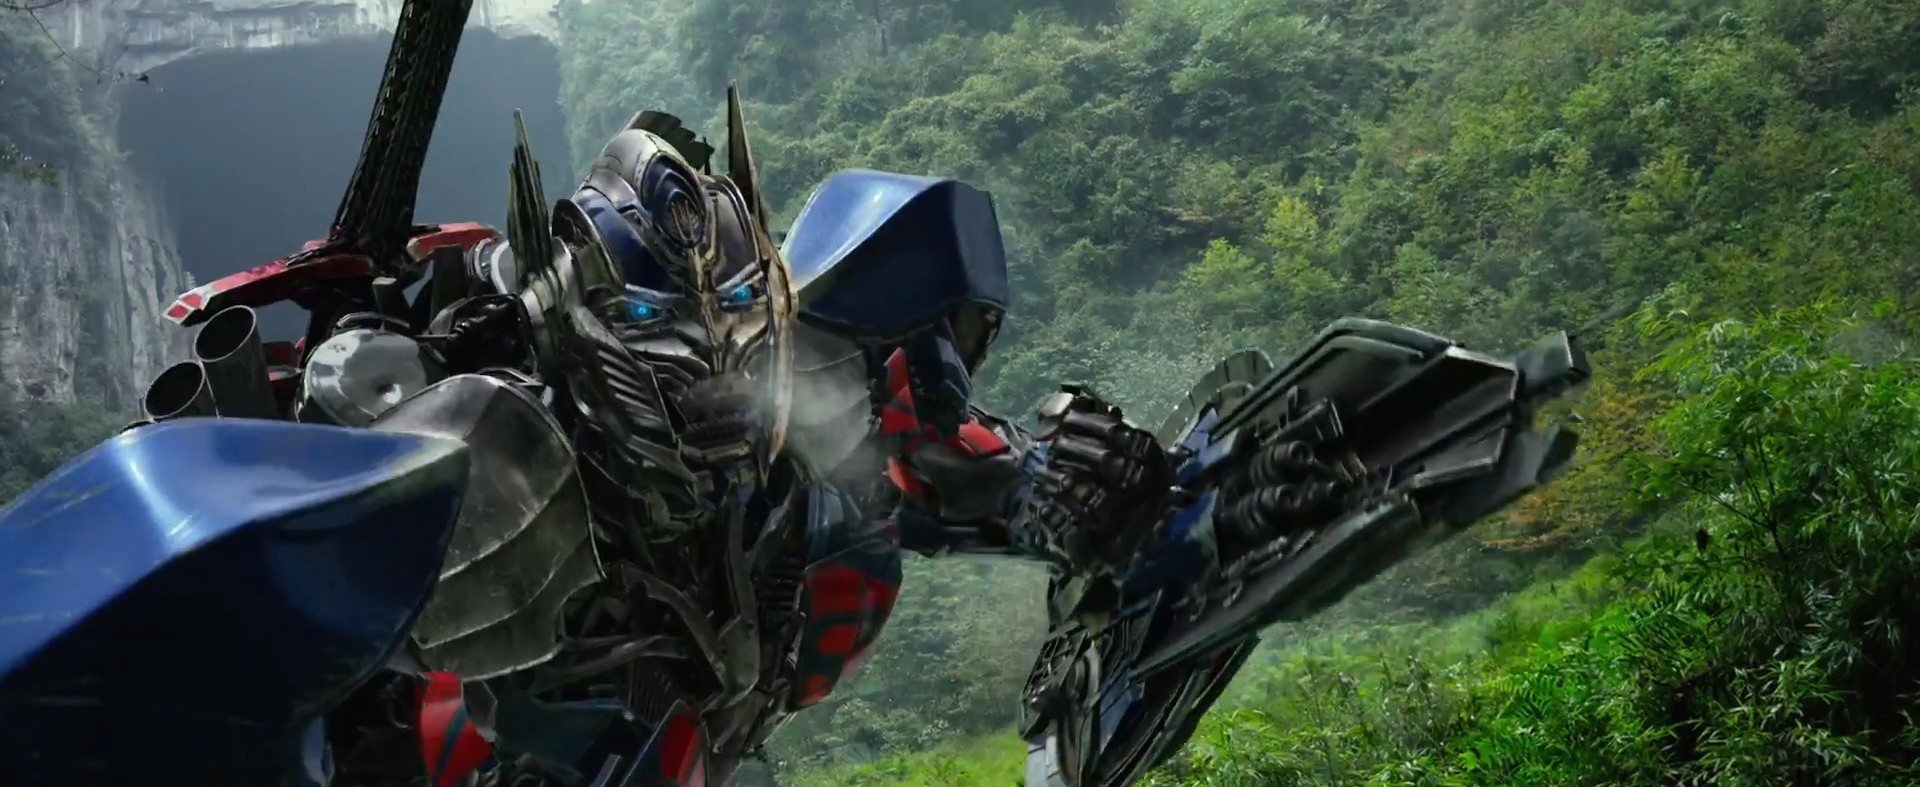 tv-spot-for-transformers-age-of-extinction